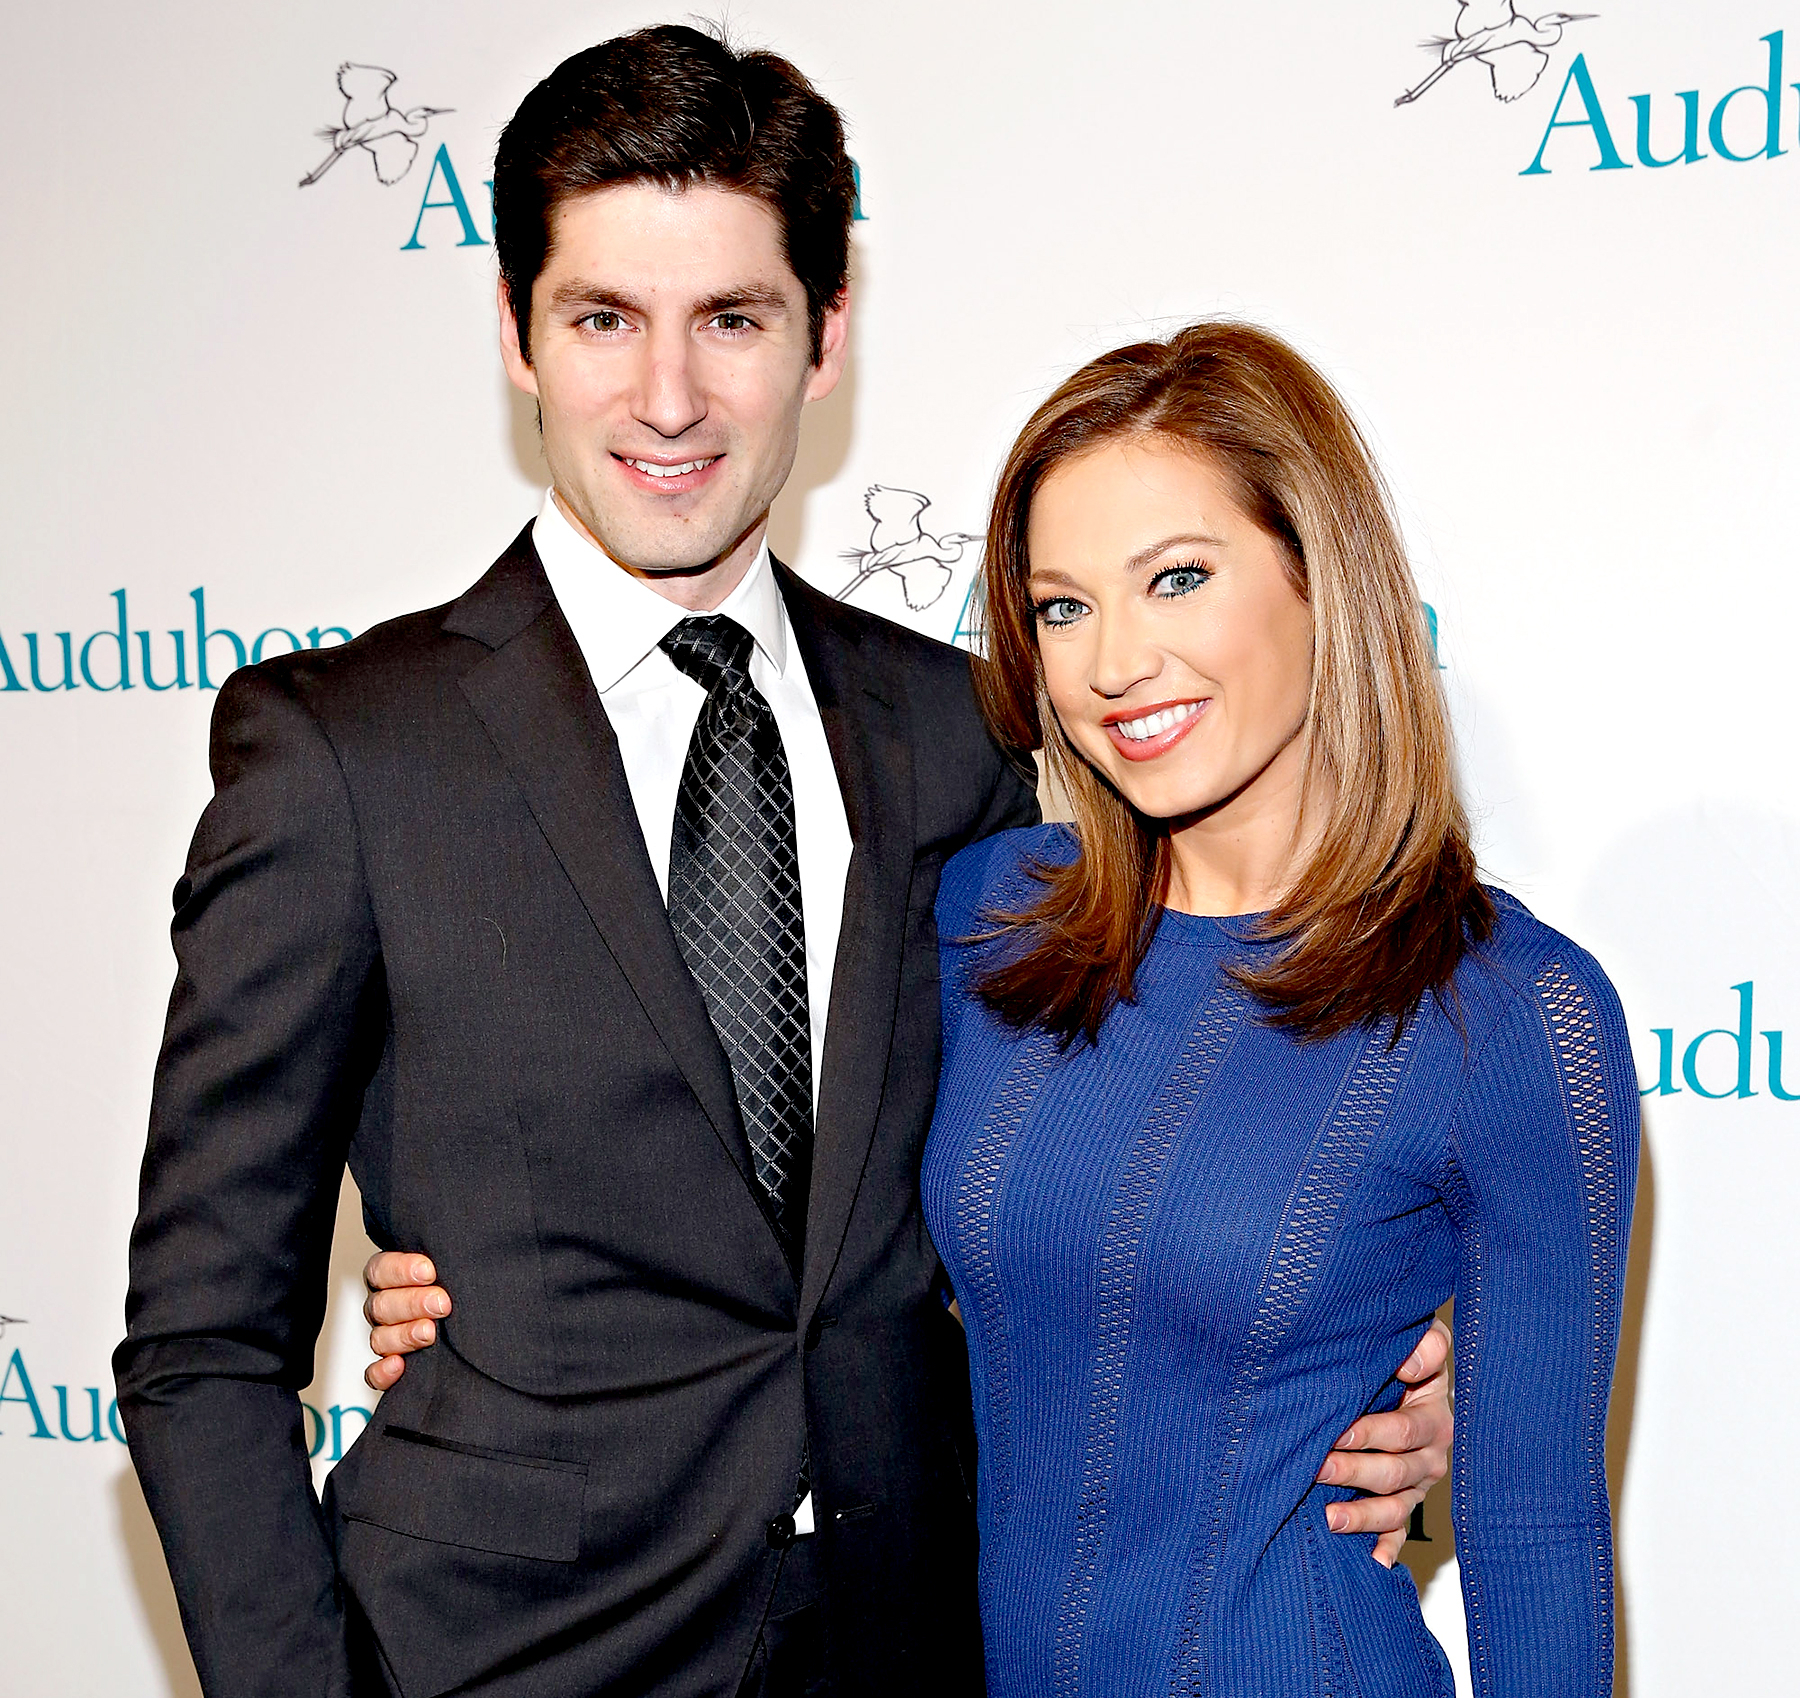 Ben Aaron and Ginger Zee attend the 2013 National Audubon Society's Gala at The Plaza Hotel in New York City on January 27, 2014.